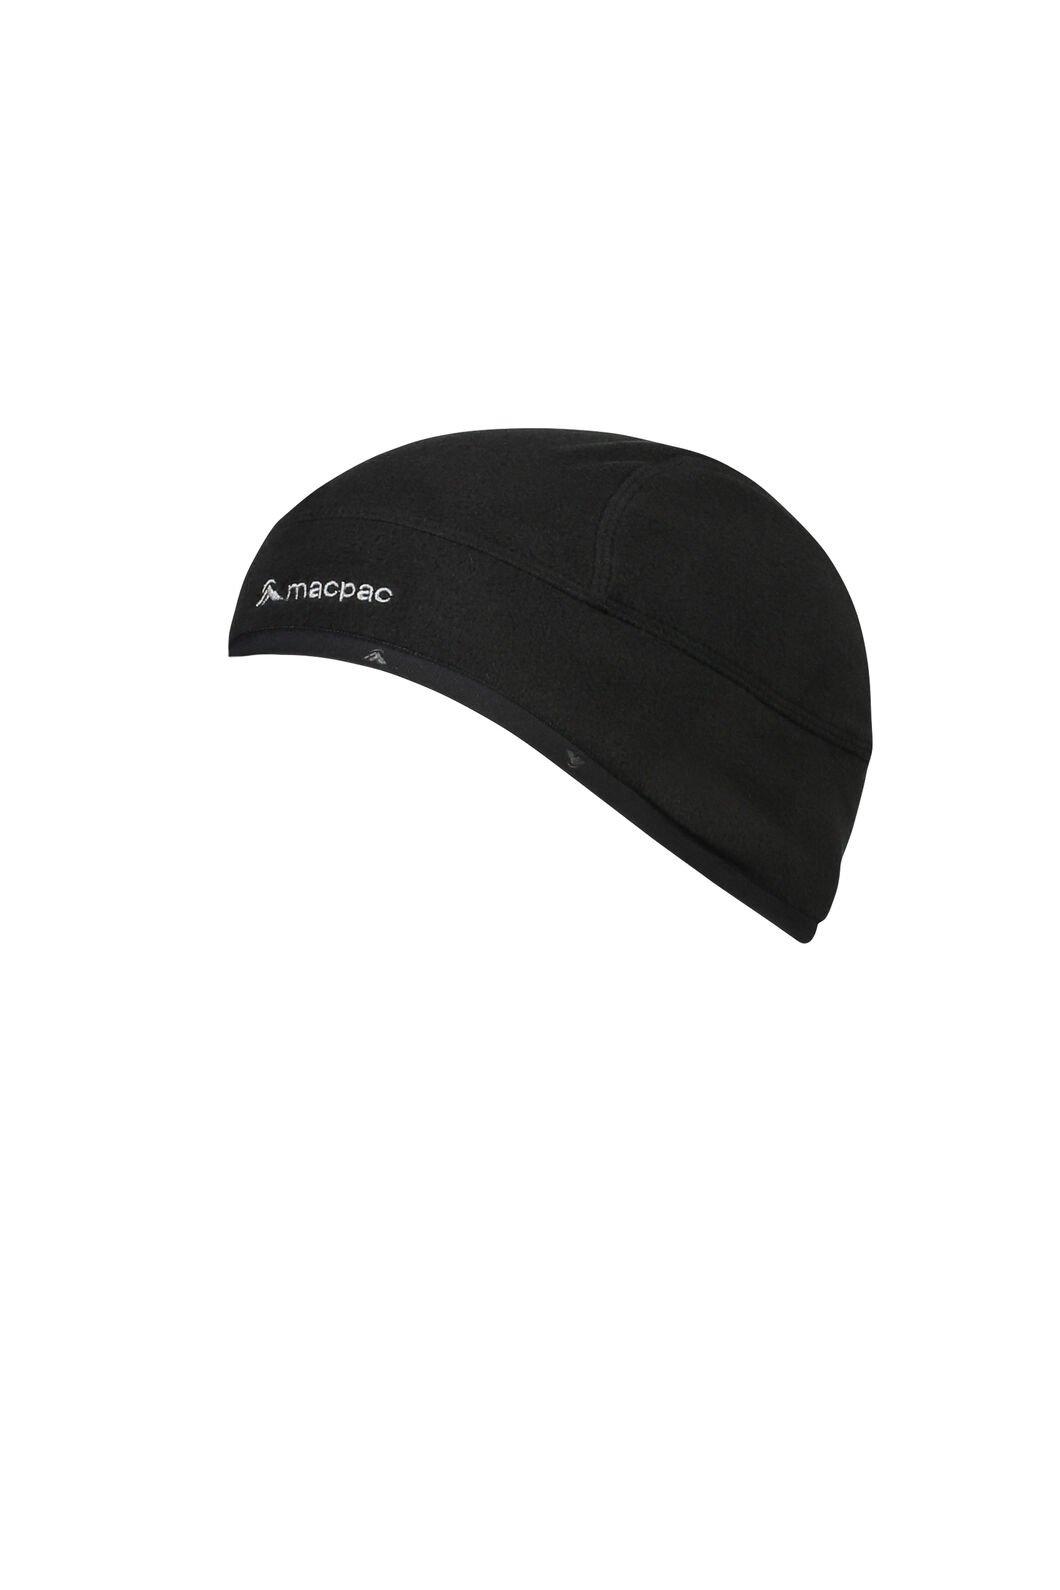 Macpac Hothed Fleece Beanie V3, Black, hi-res